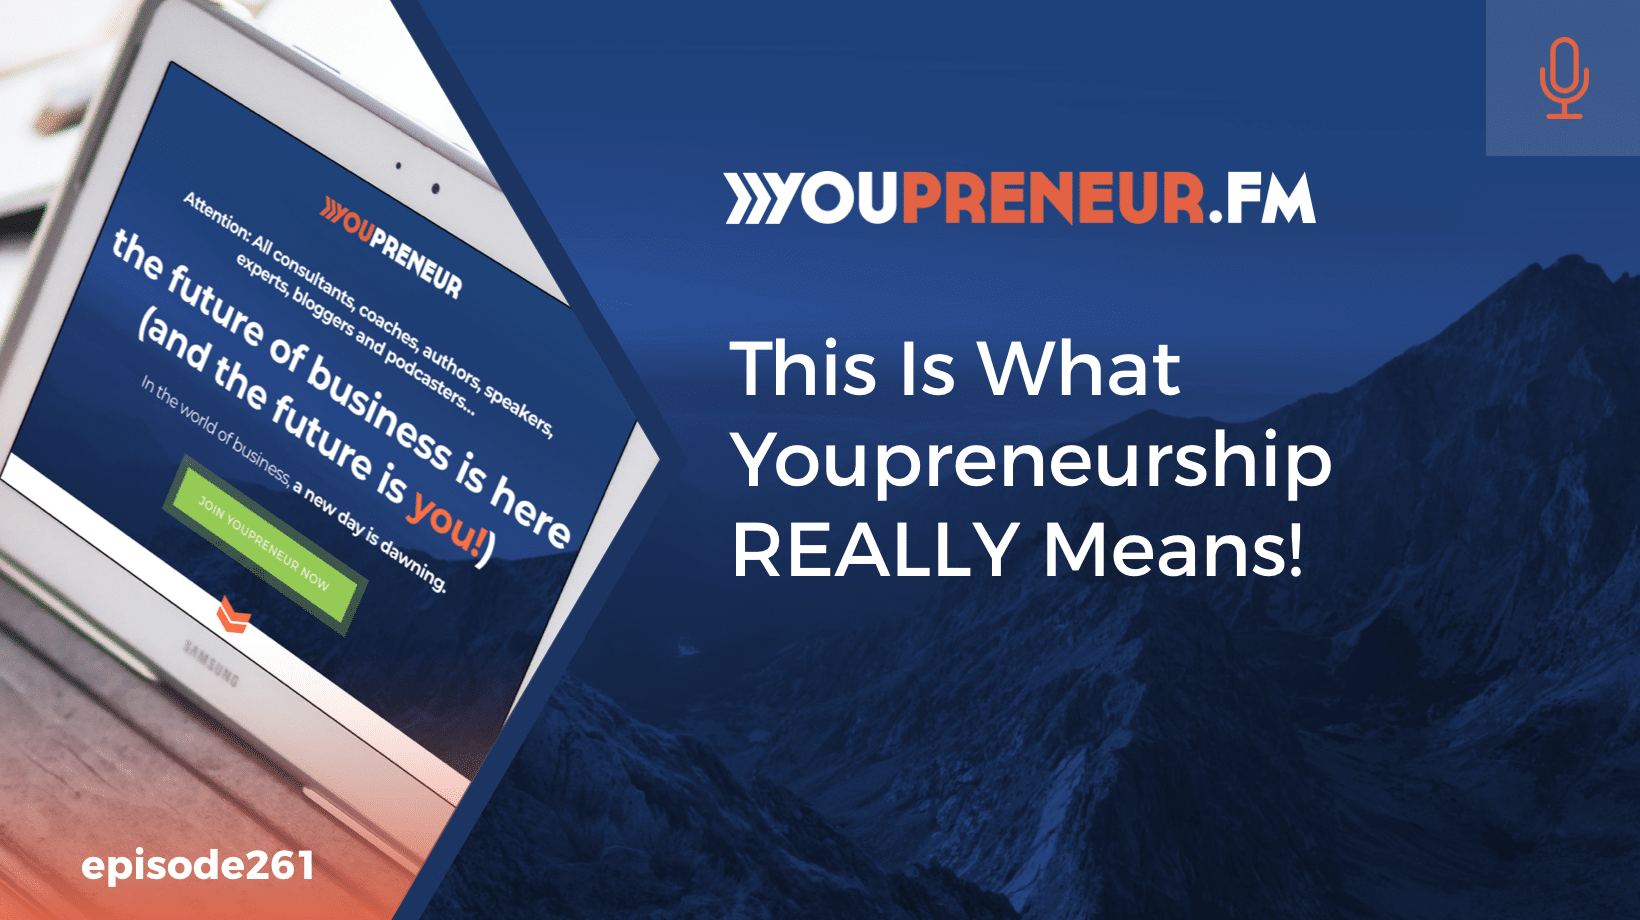 This Is What Youpreneurship REALLY Means!